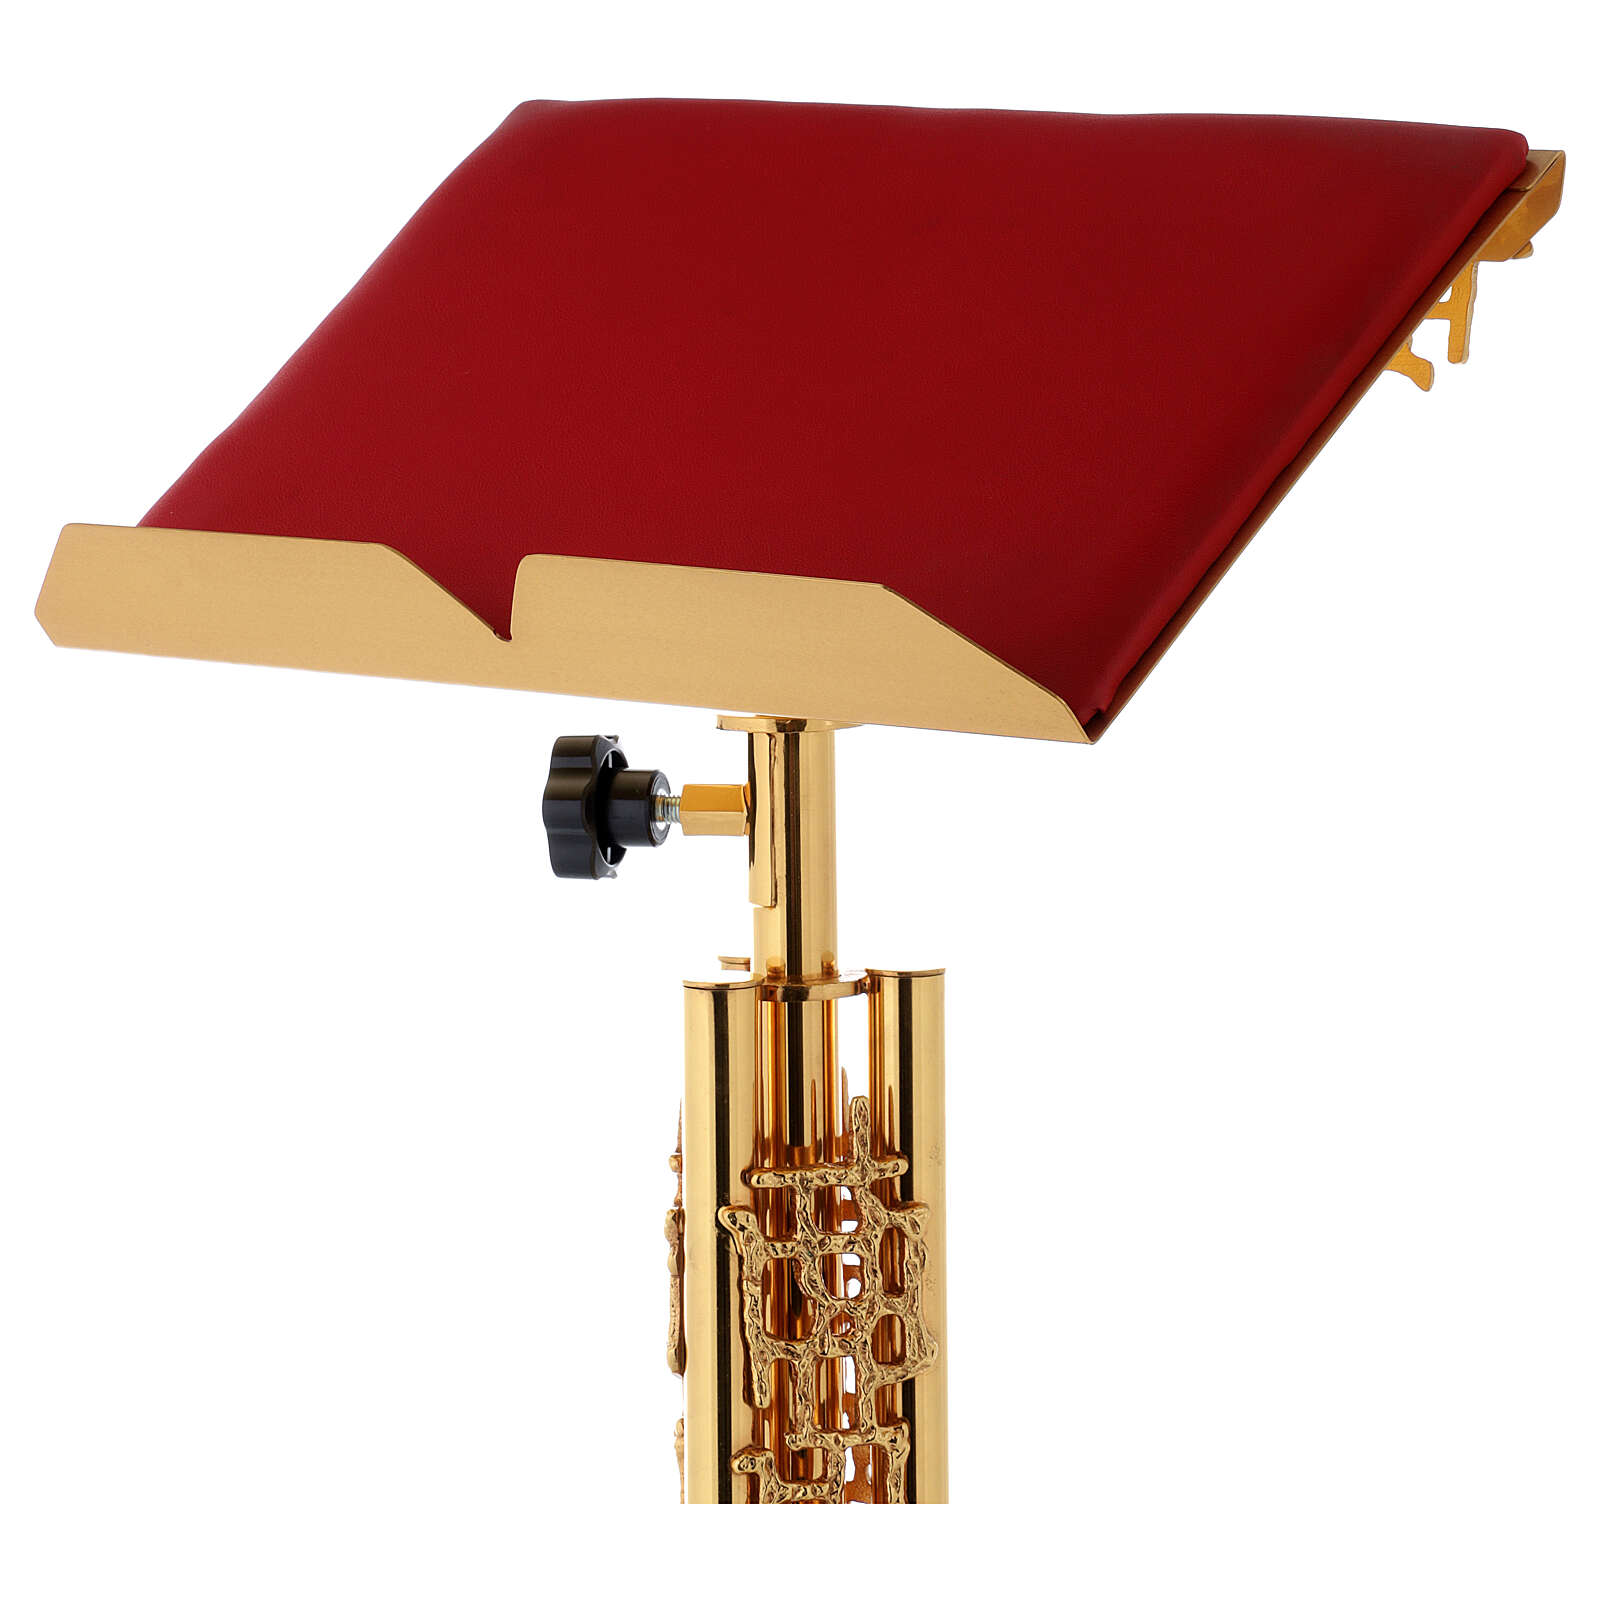 Single-column book stand with marble base in gold brass with stylized design 4